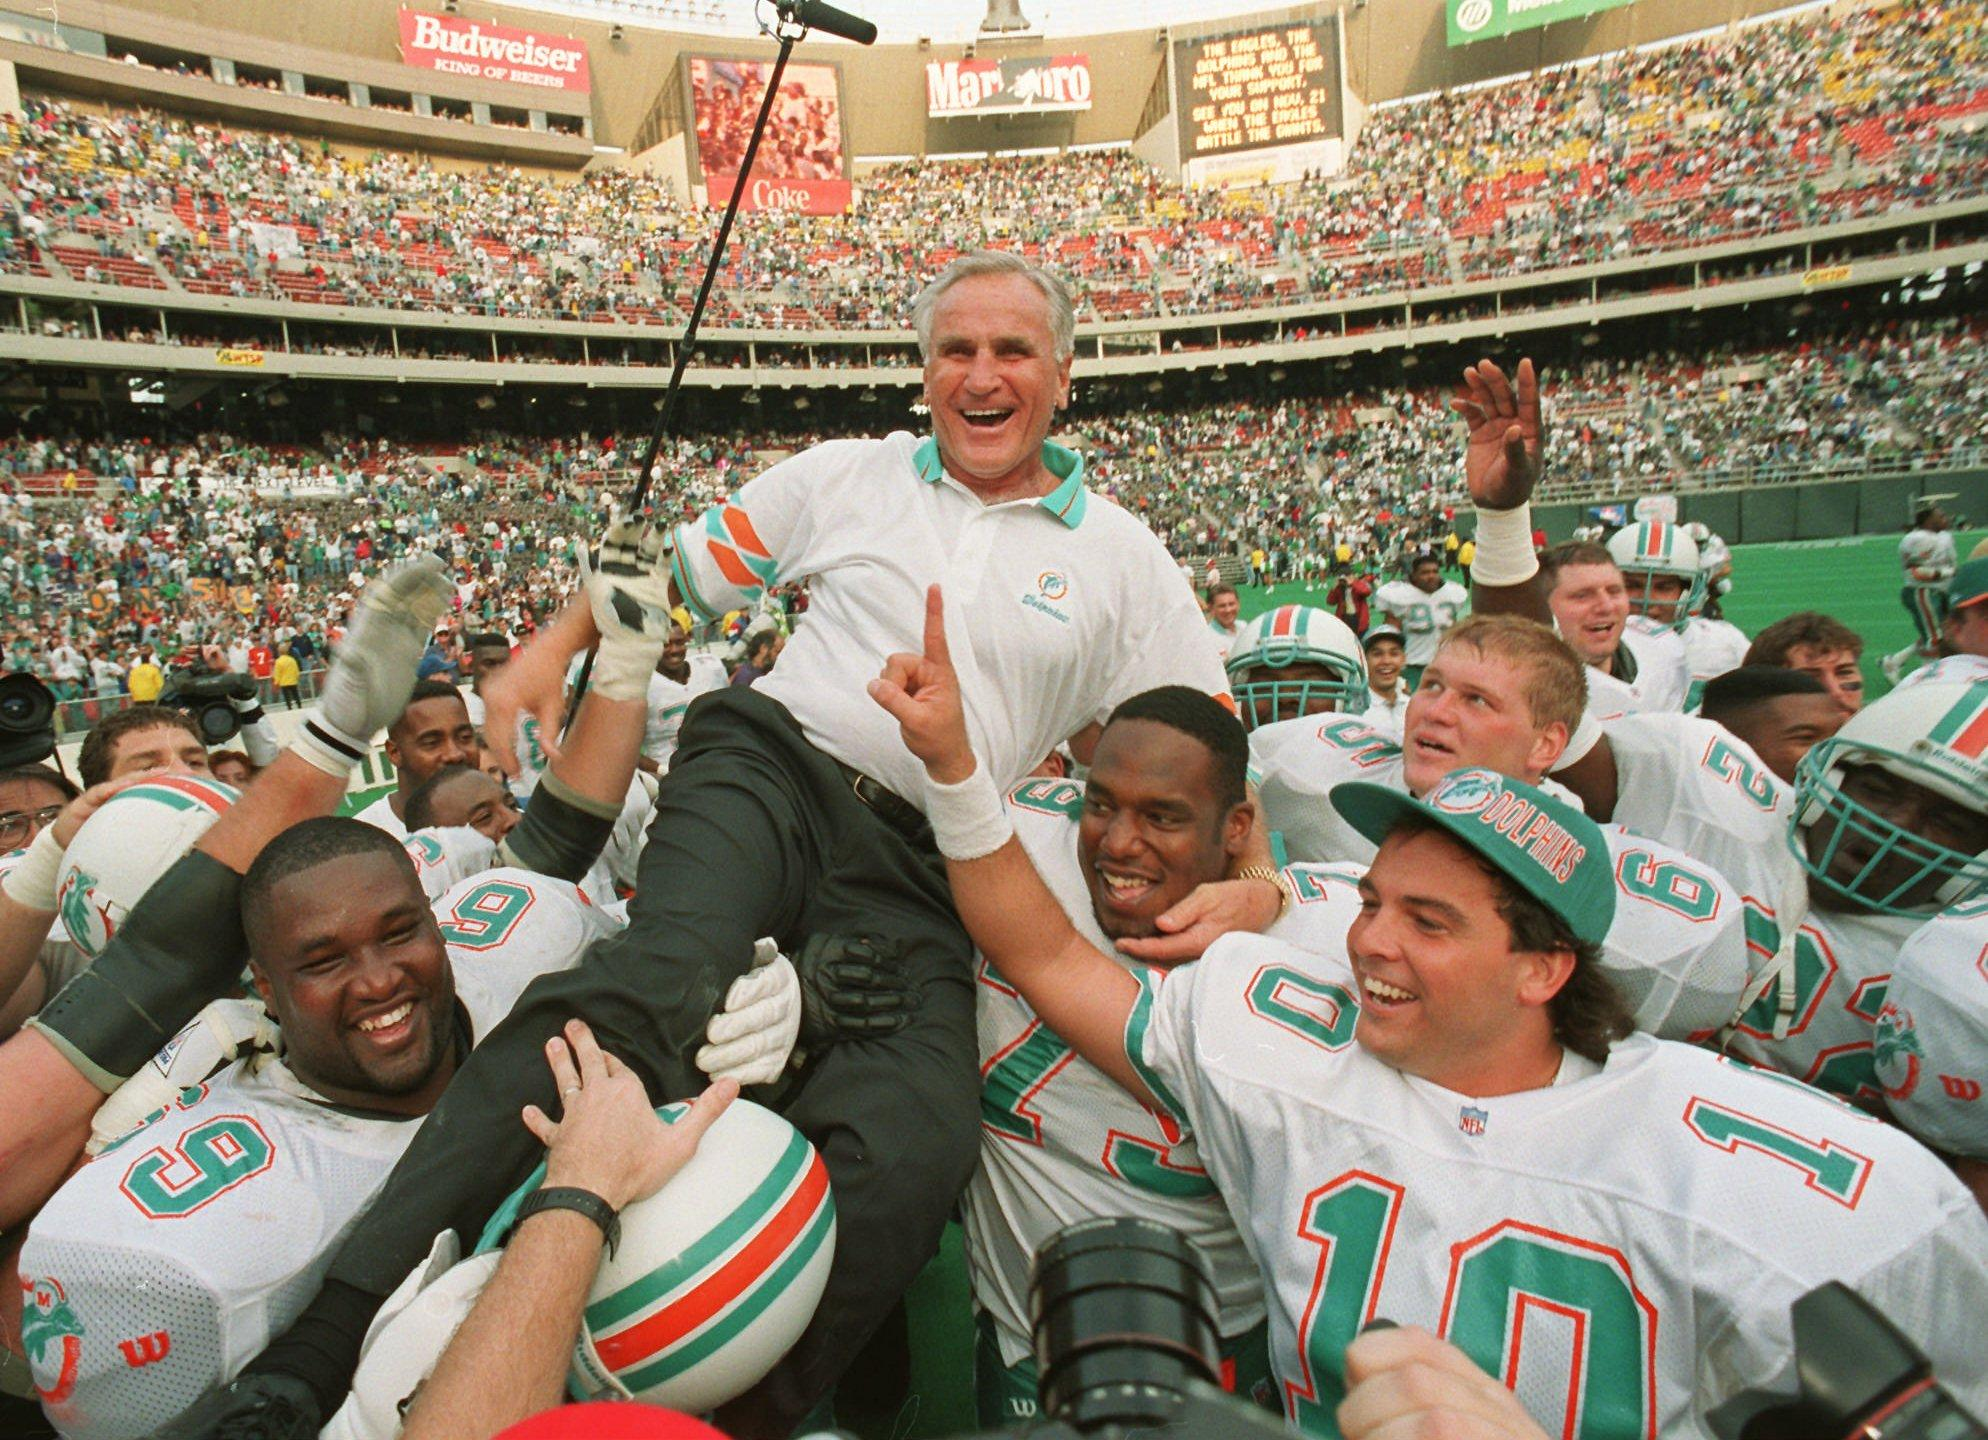 https://sportstalkflorida.com/wp-content/uploads/2014/01/Don-Shula-1.jpg